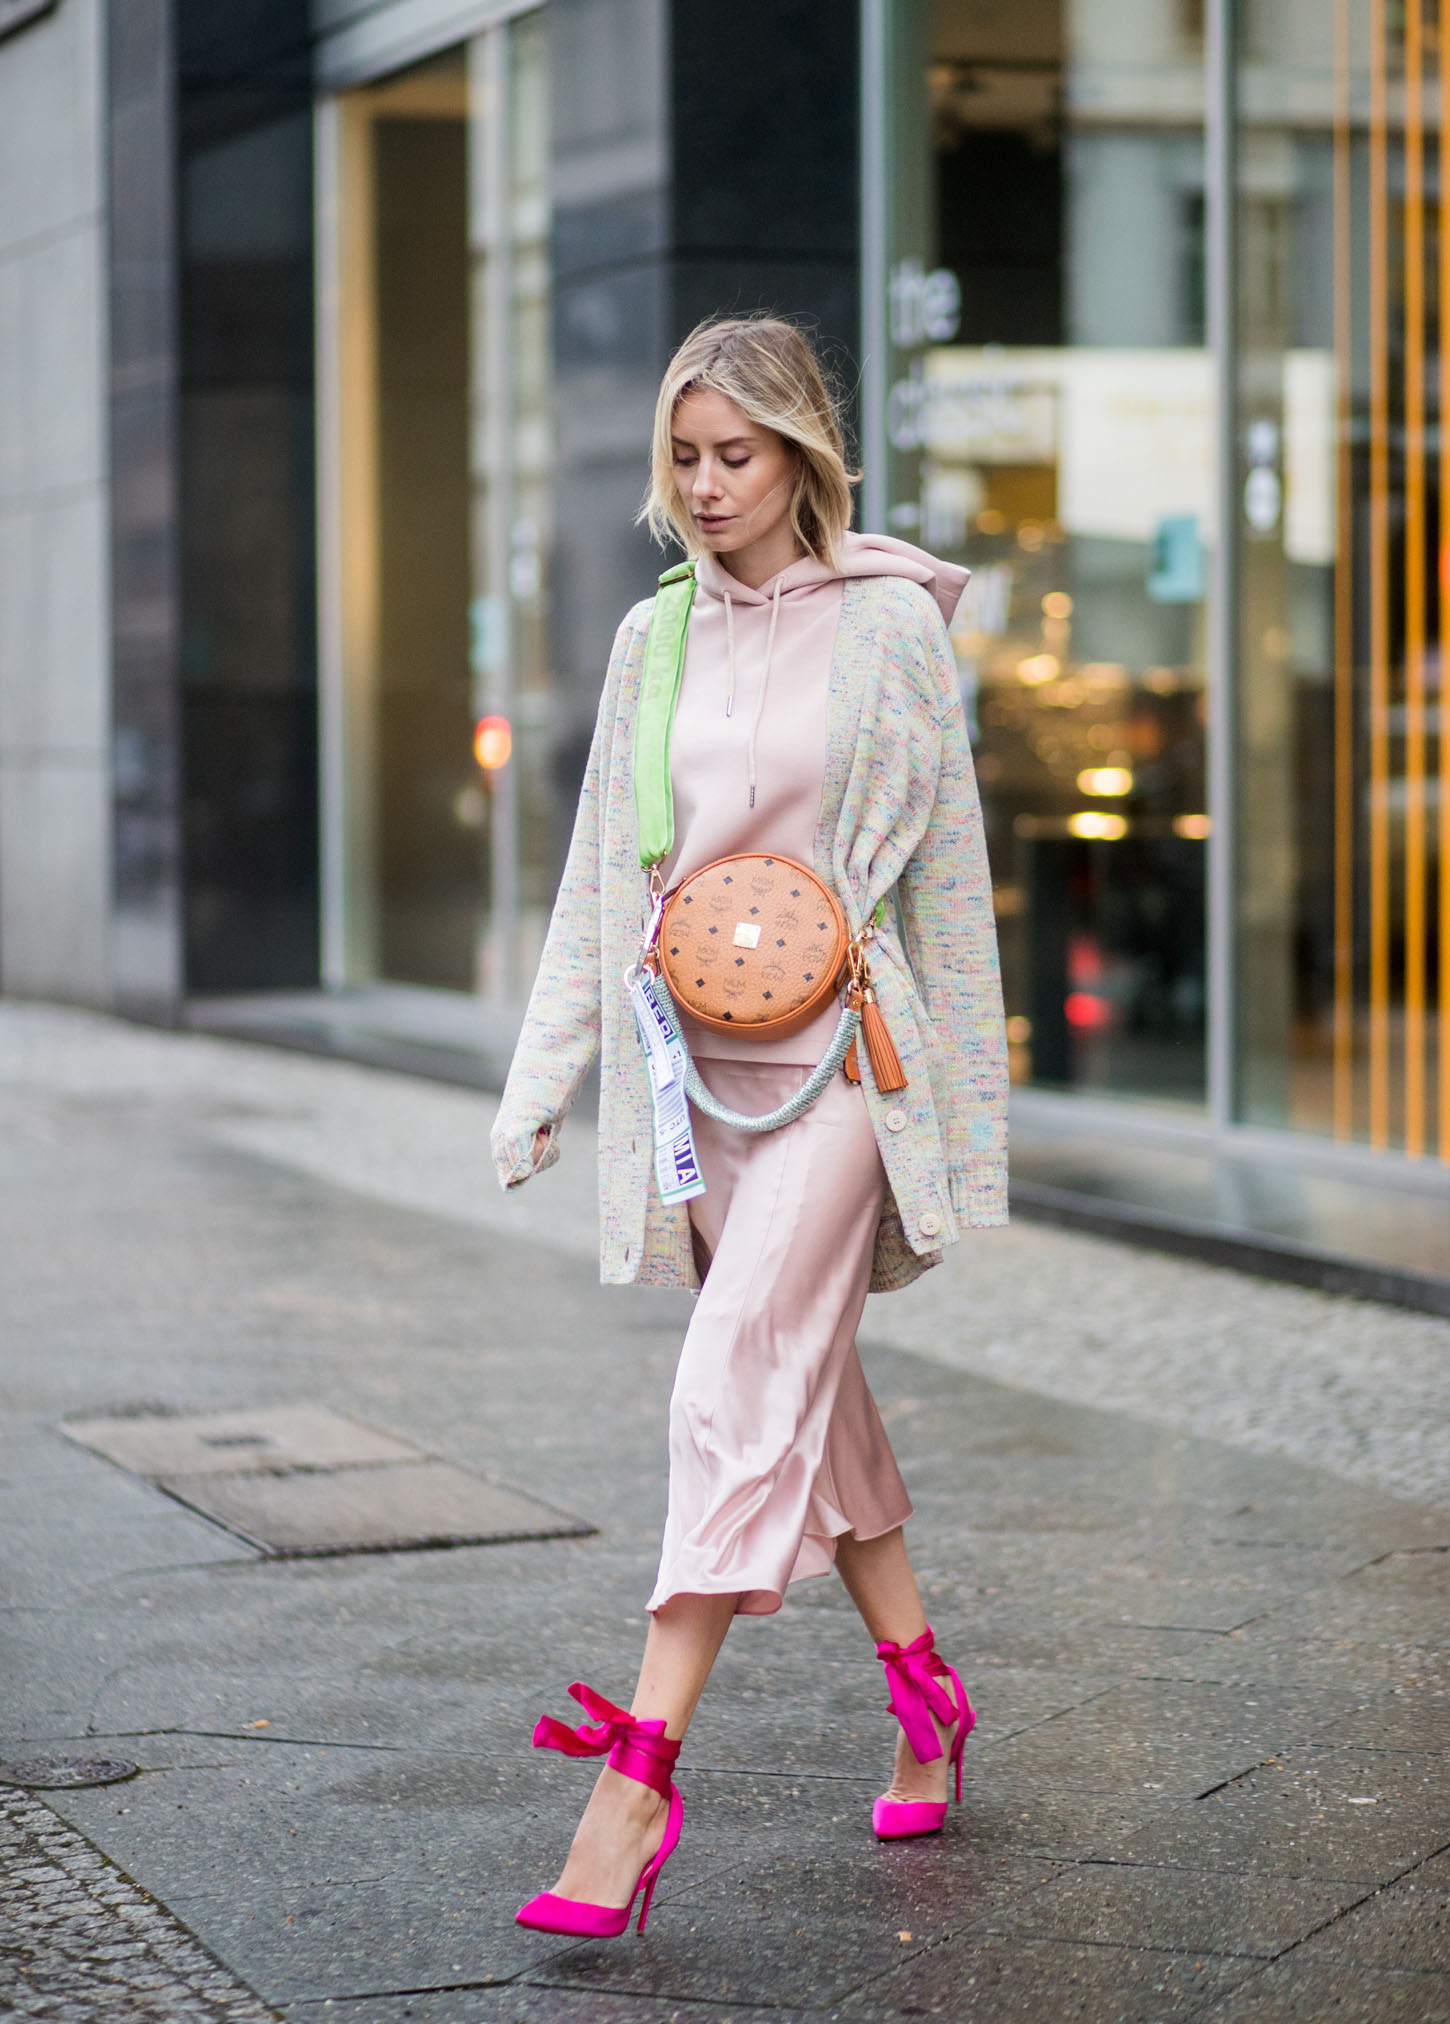 BERLIN, GERMANY - JANUARY 17: Lisa Hahnbueck wearing MCM x Koenigsouvenir bag, pink heels, rose dress, coat is seen outside Lana Mueller during the Berlin Fashion Week January 2018 on January 17, 2018 in Berlin, Germany. (Photo by Christian Vierig/Getty Images)